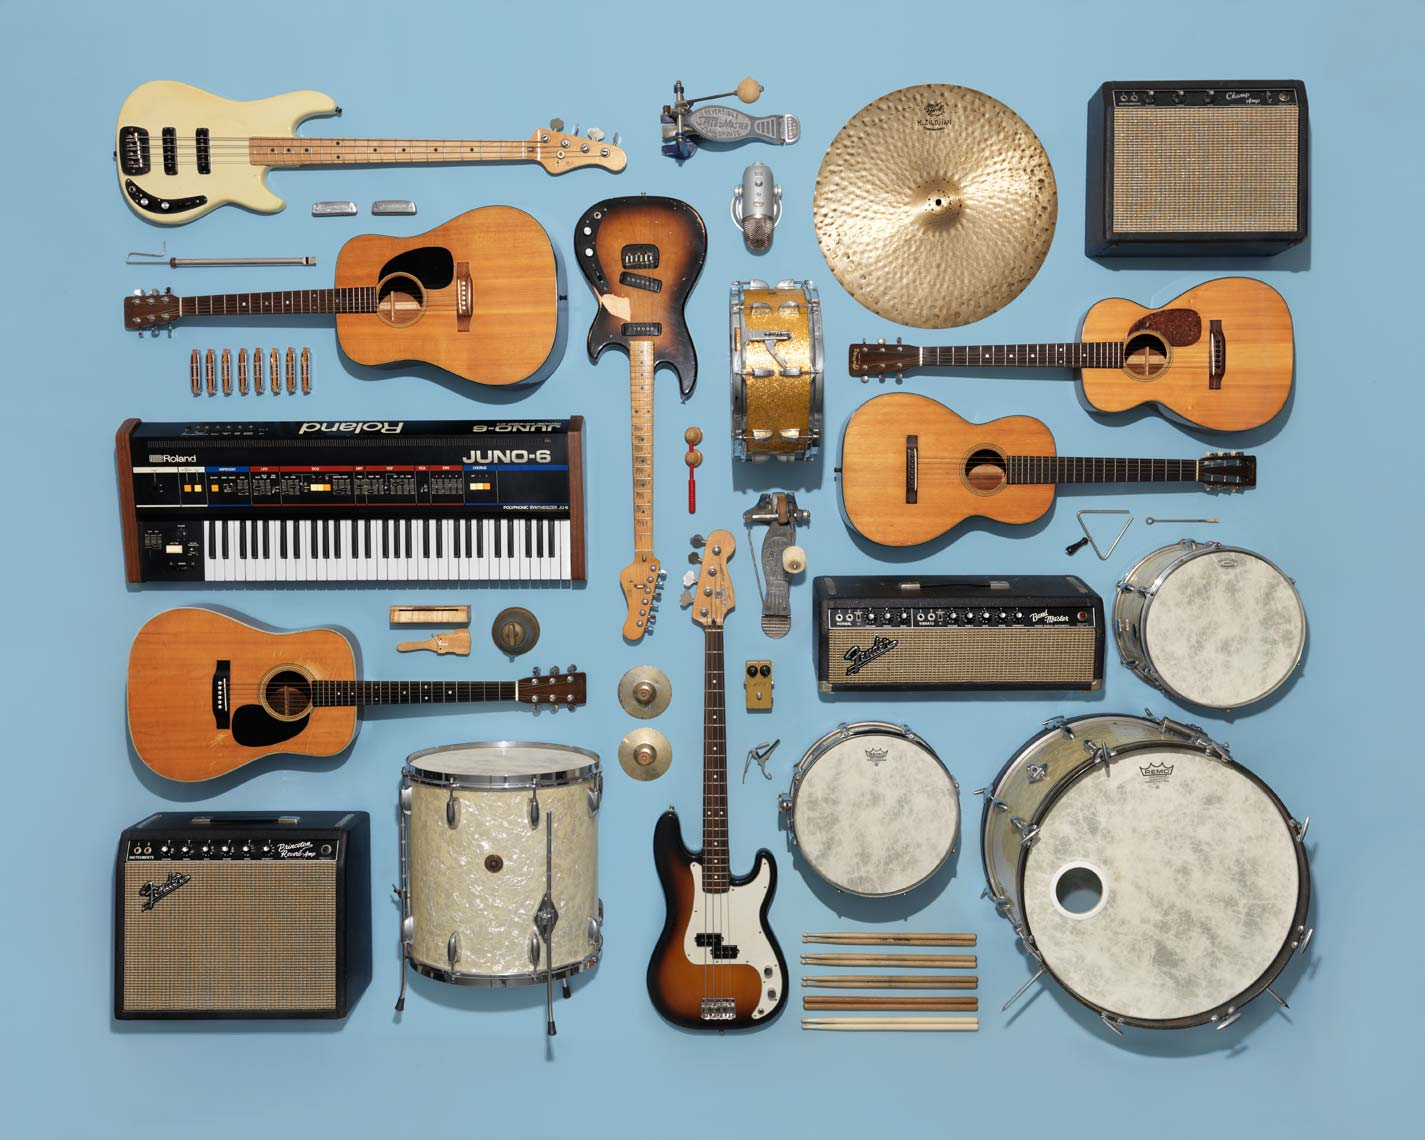 classic instruments arranged on a light blue background